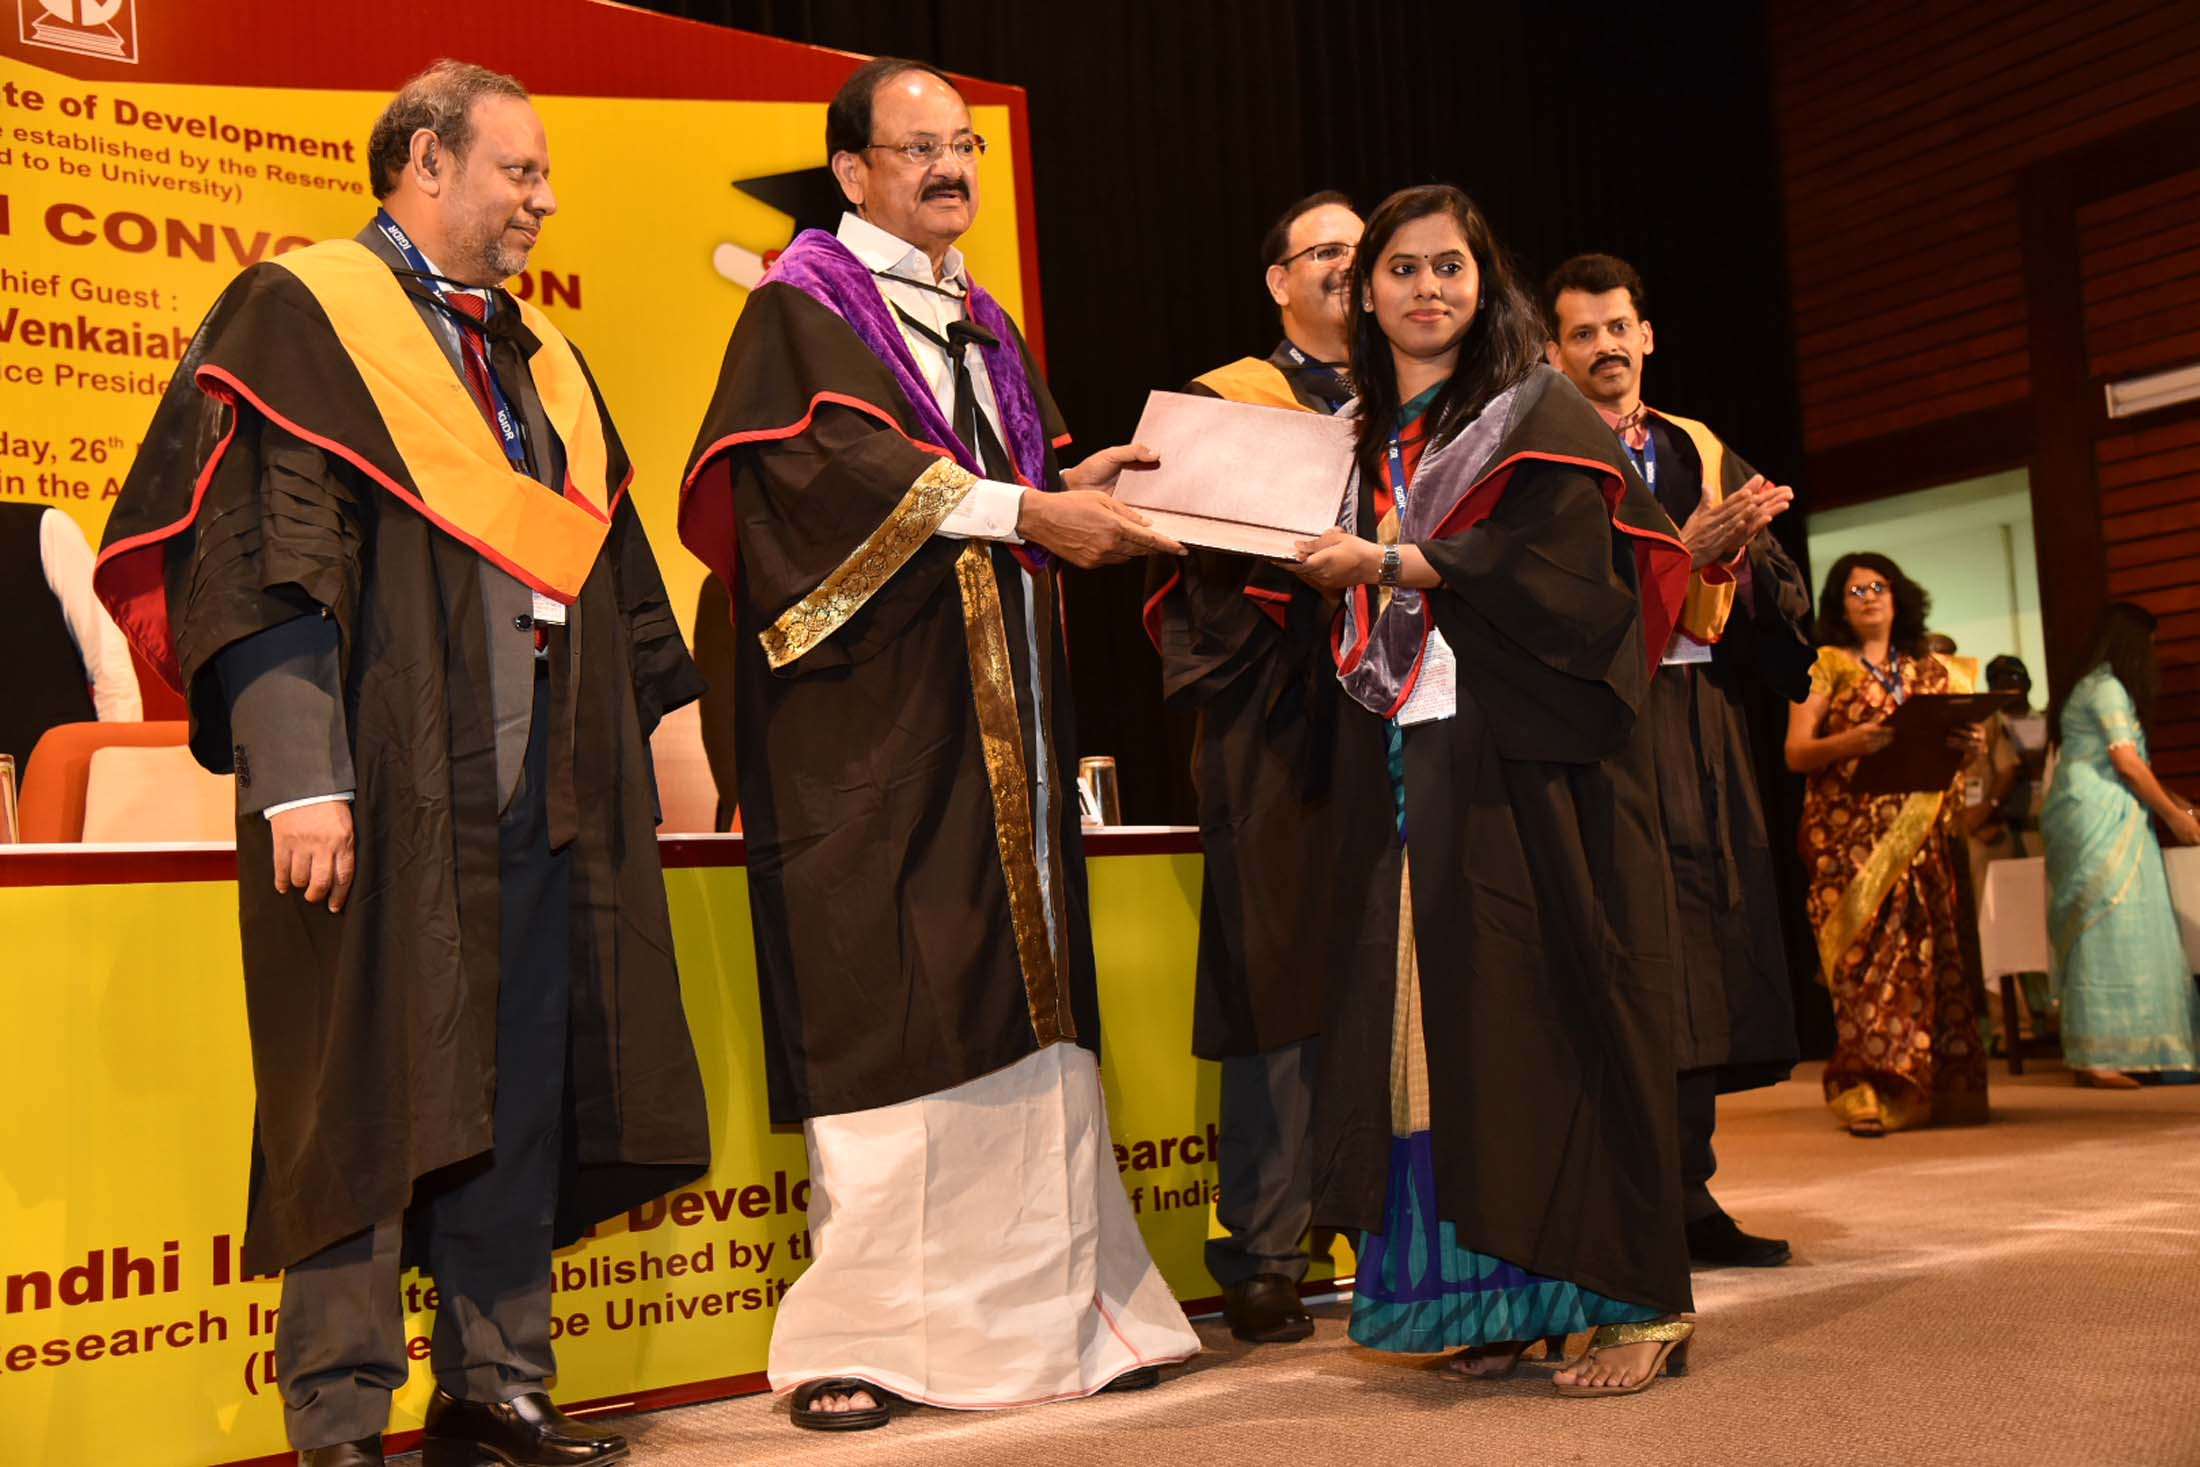 The Vice President, Shri M. Venkaiah Naidu presenting Degrees to the Students at the 16th Convocation of the Indira Gandhi Institute of Development Research, in Mumbai on March 26, 2019.